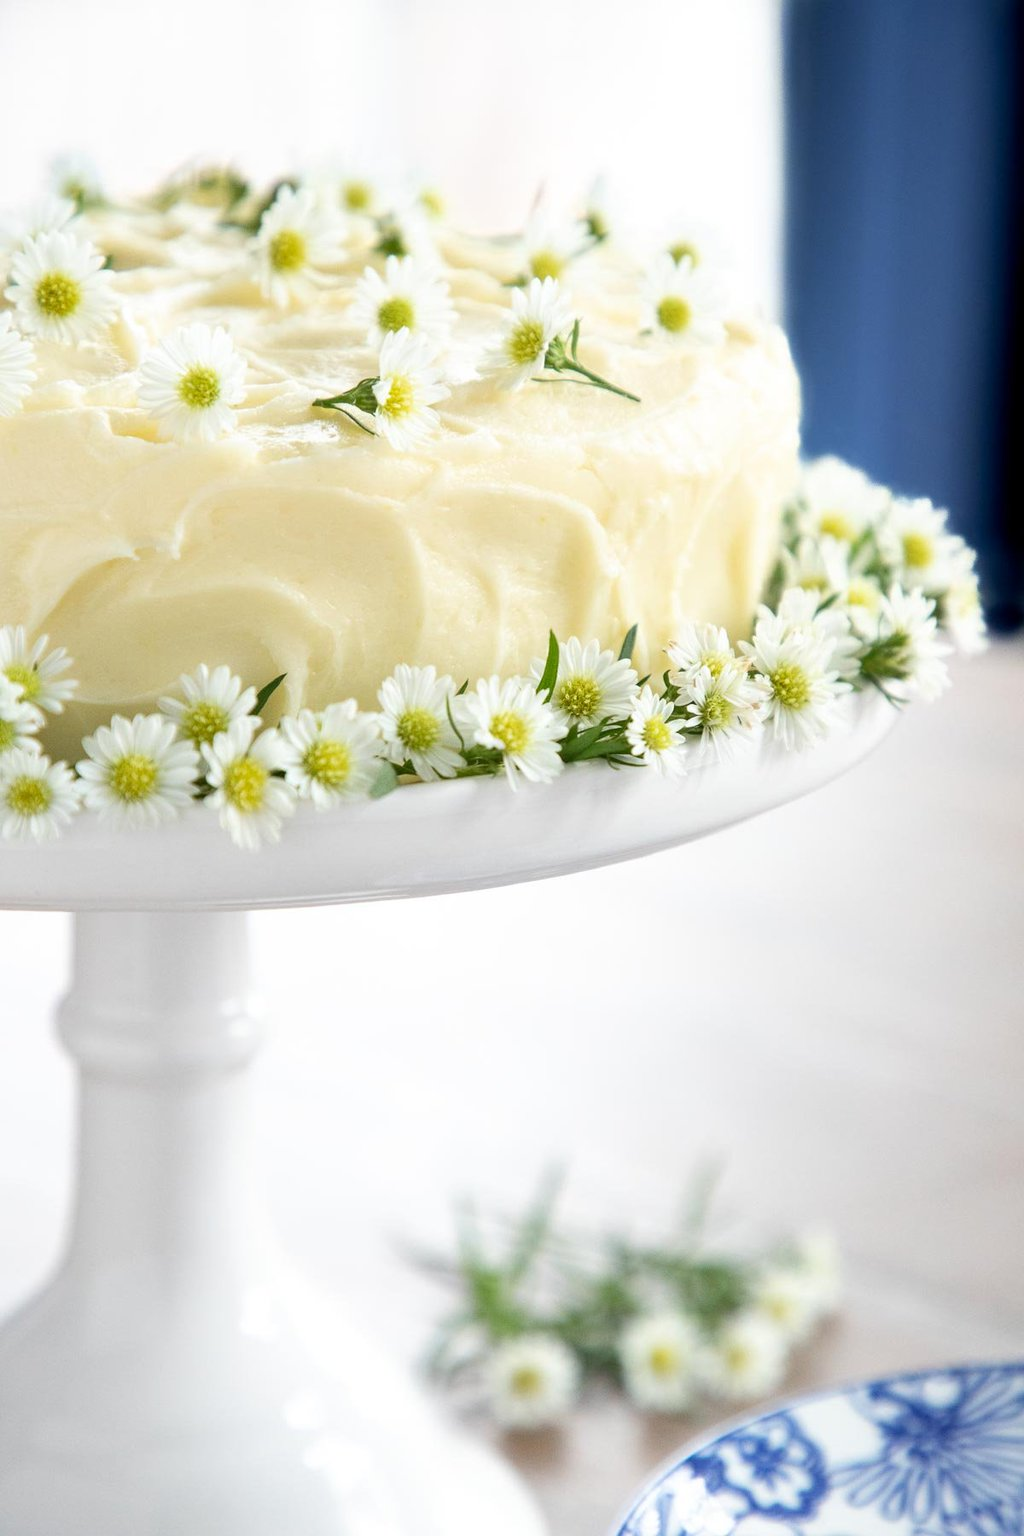 Photo of the side and top of an Lemon Curd Poppy Seed Cake decorated with white edible flowers.